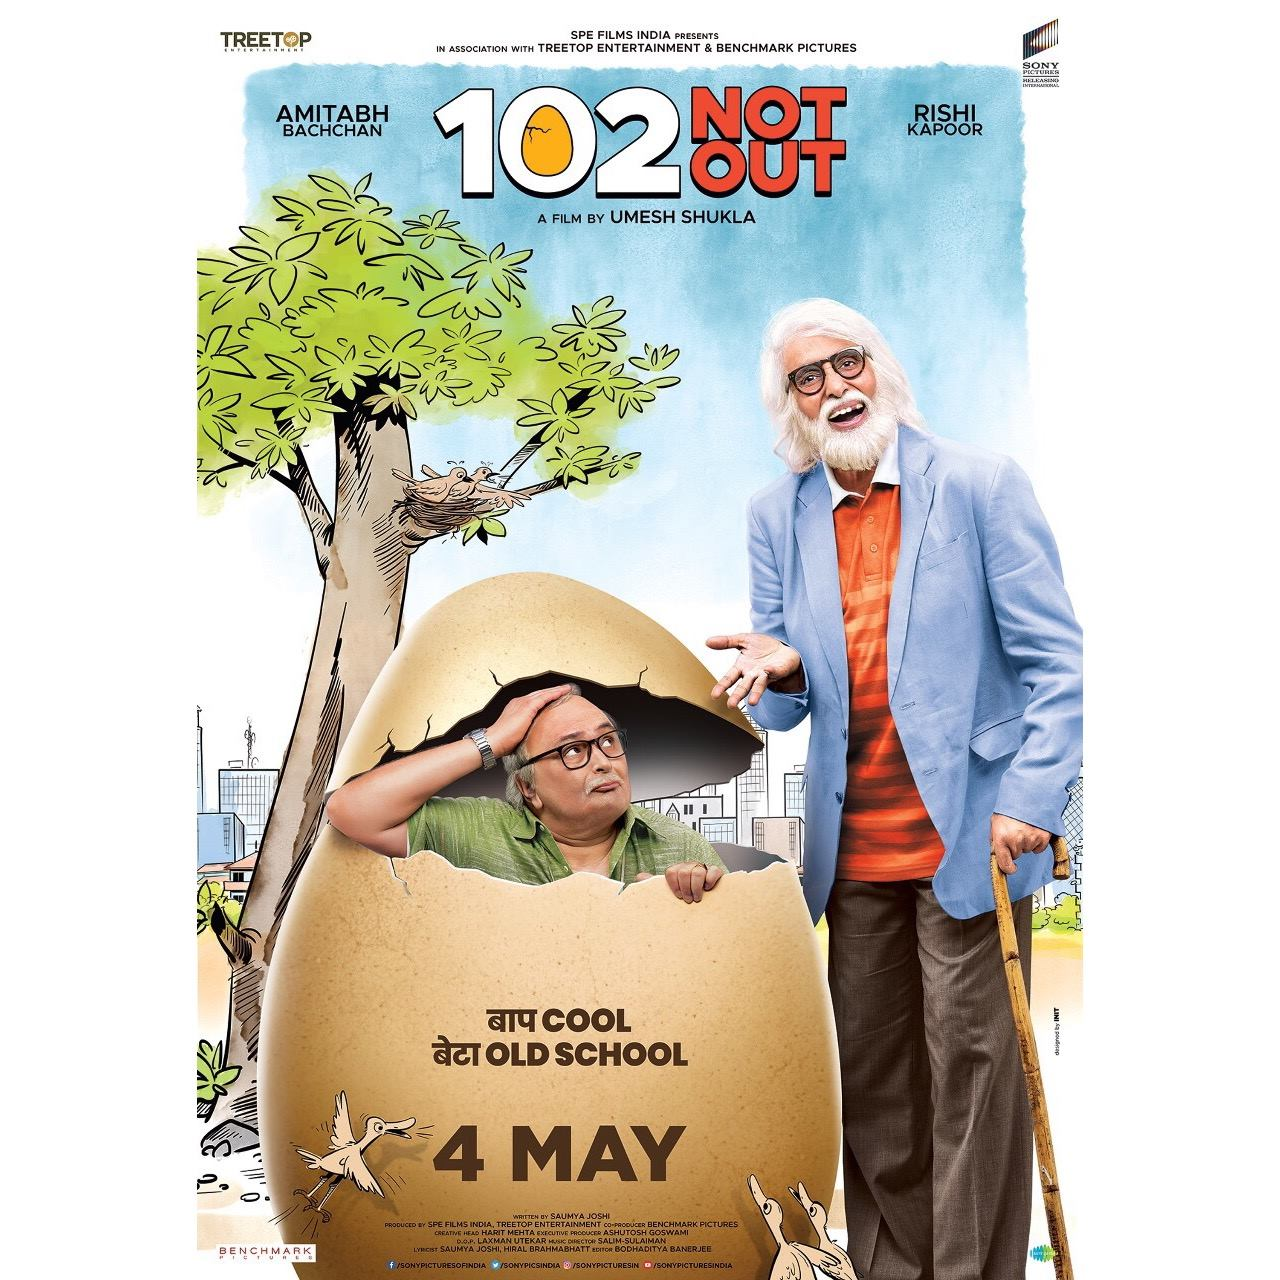 FB 1956 -  HATCH the egg and be the first one to CATCH the trailer of 102 Not Out! #HatchThe102NotOutTrailer bit.ly/HatchThe102NotOutTrailer #RishiKapoor #UmeshKShukla #TreeTopEntertainment @sonypicturesofindia